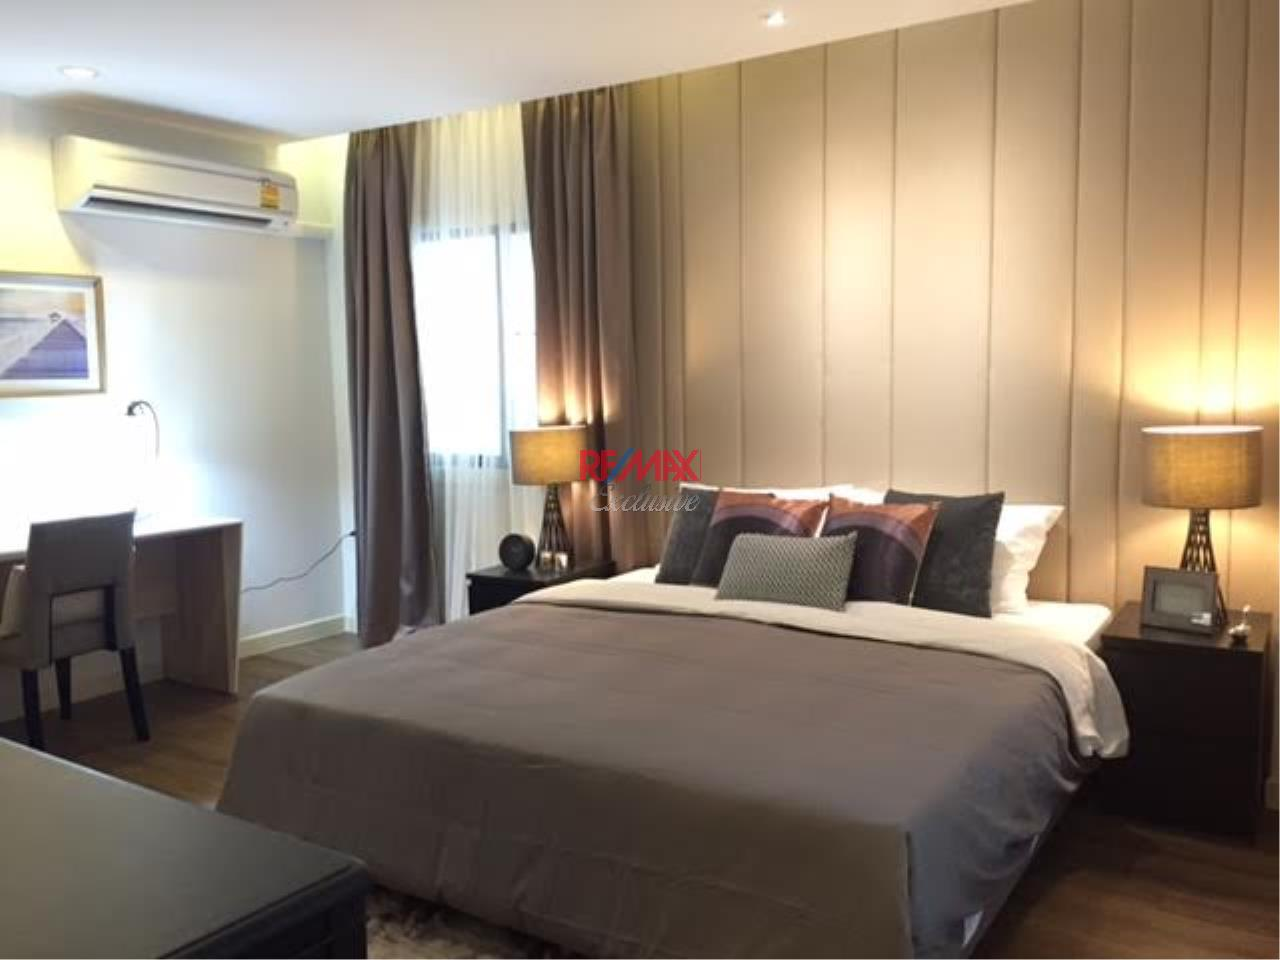 RE/MAX Exclusive Agency's Big Space Apartment in Thonglor for rent 86,000 THB 5